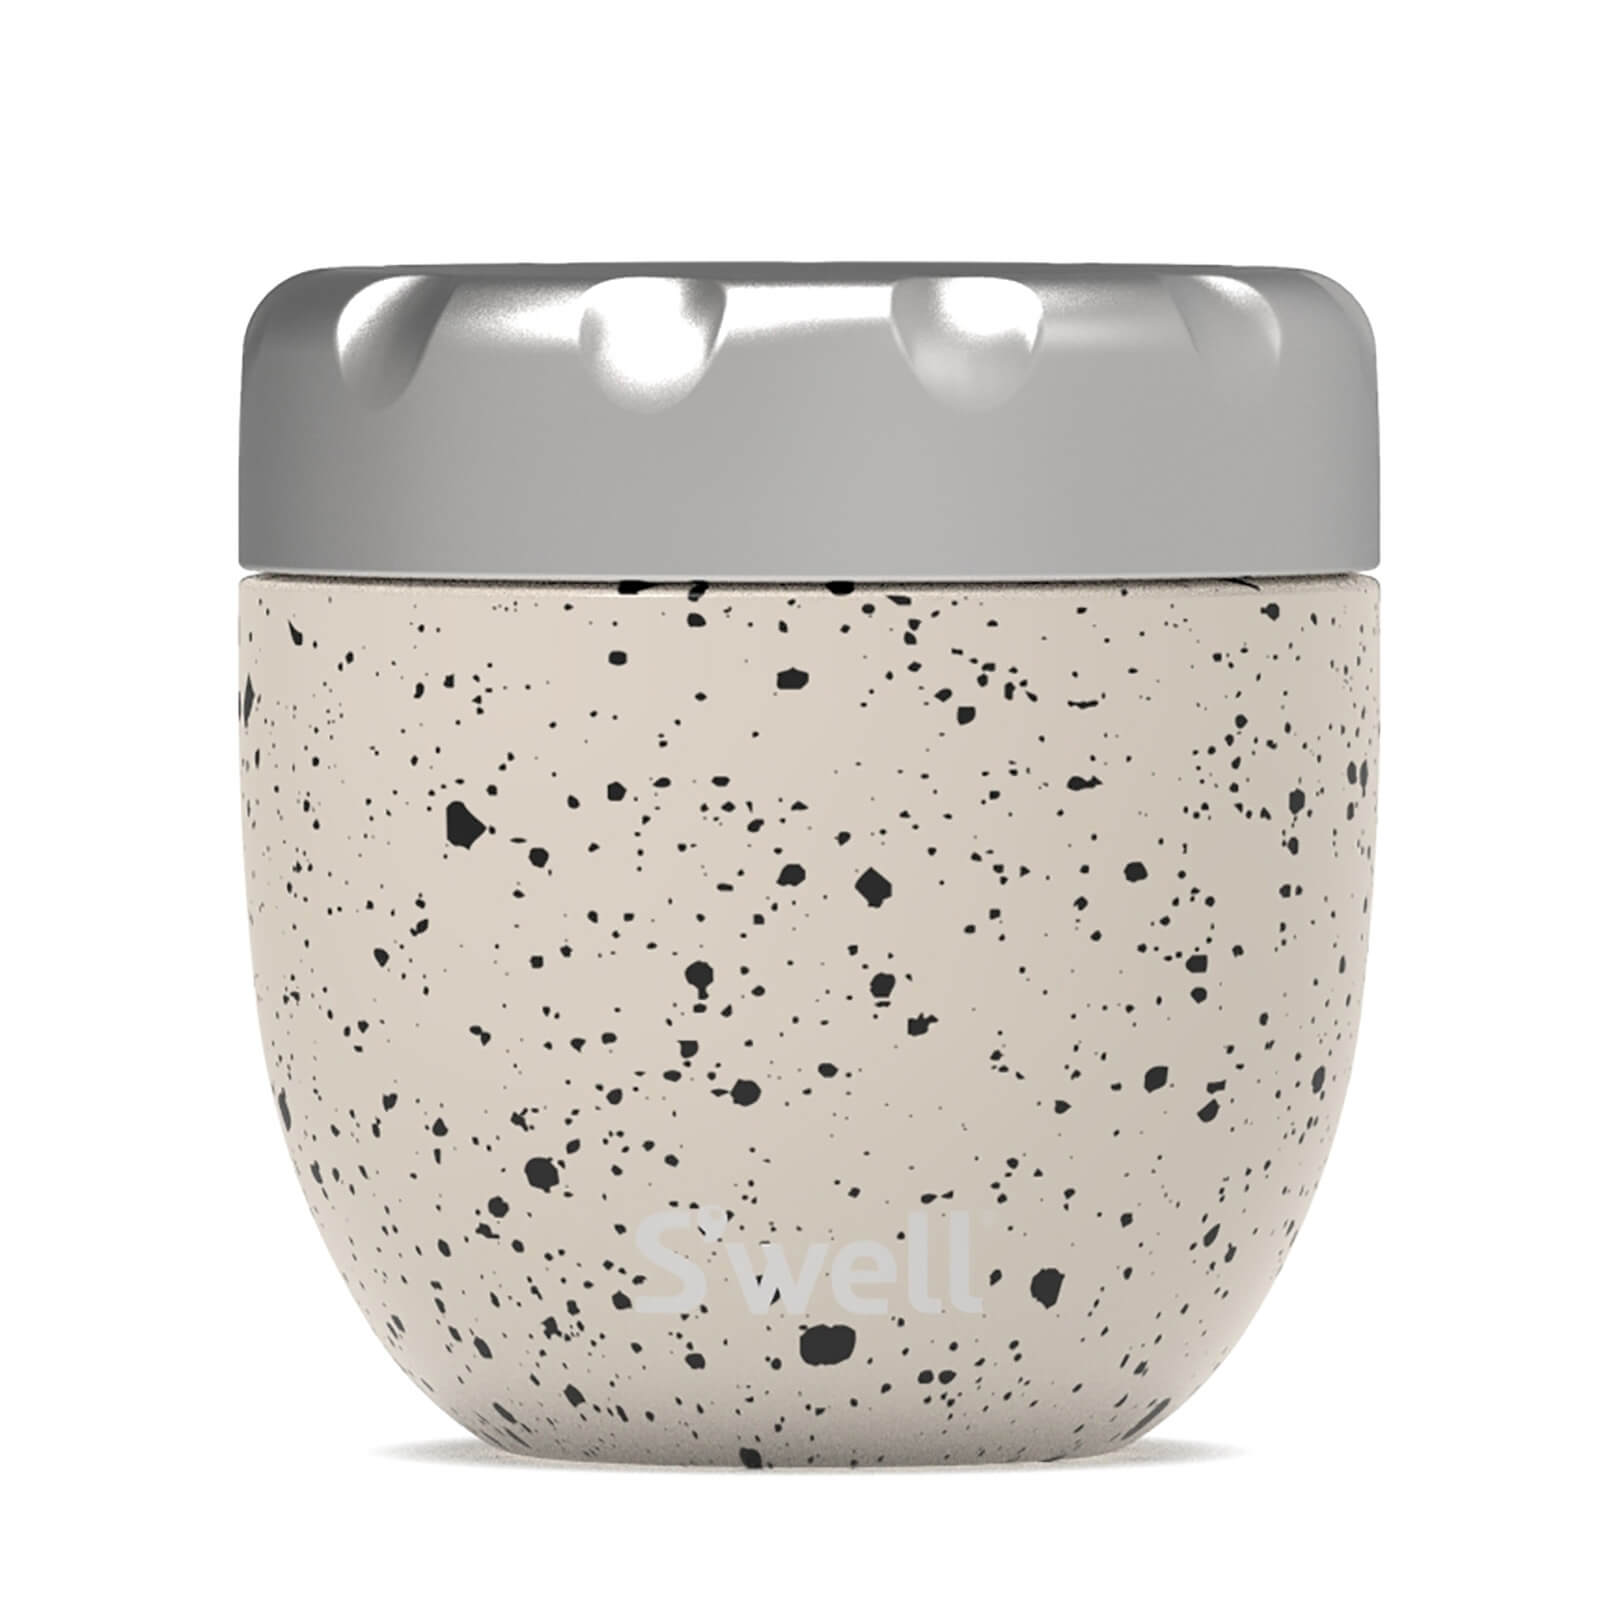 S'well Eats 2 in 1 Speckled Moon Nesting Food Bowl - Large